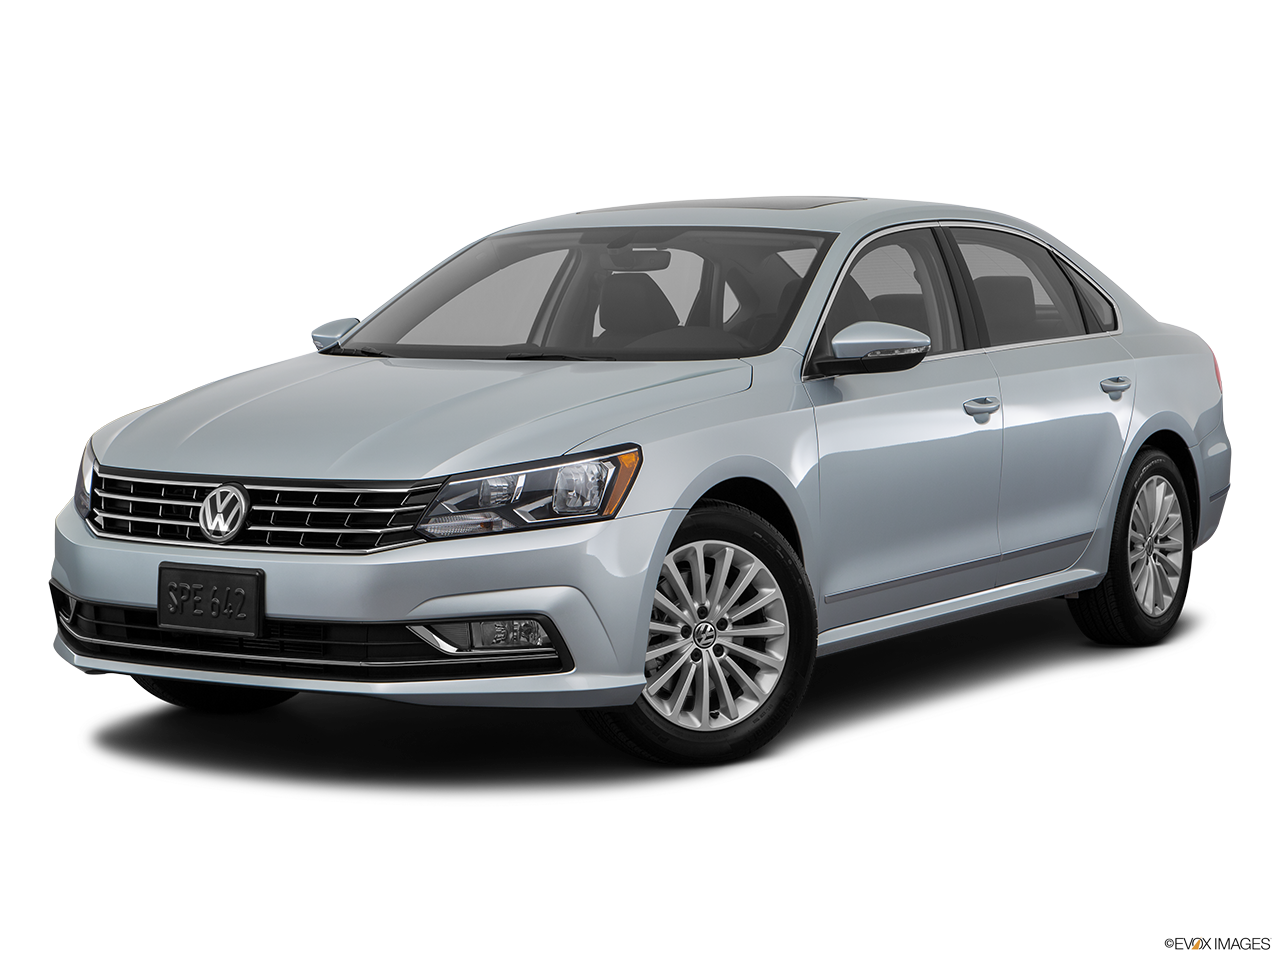 Test Drive A 2016 Volkswagen Passat at Moss Bros Volkswagen of Moreno Valley in Riverside